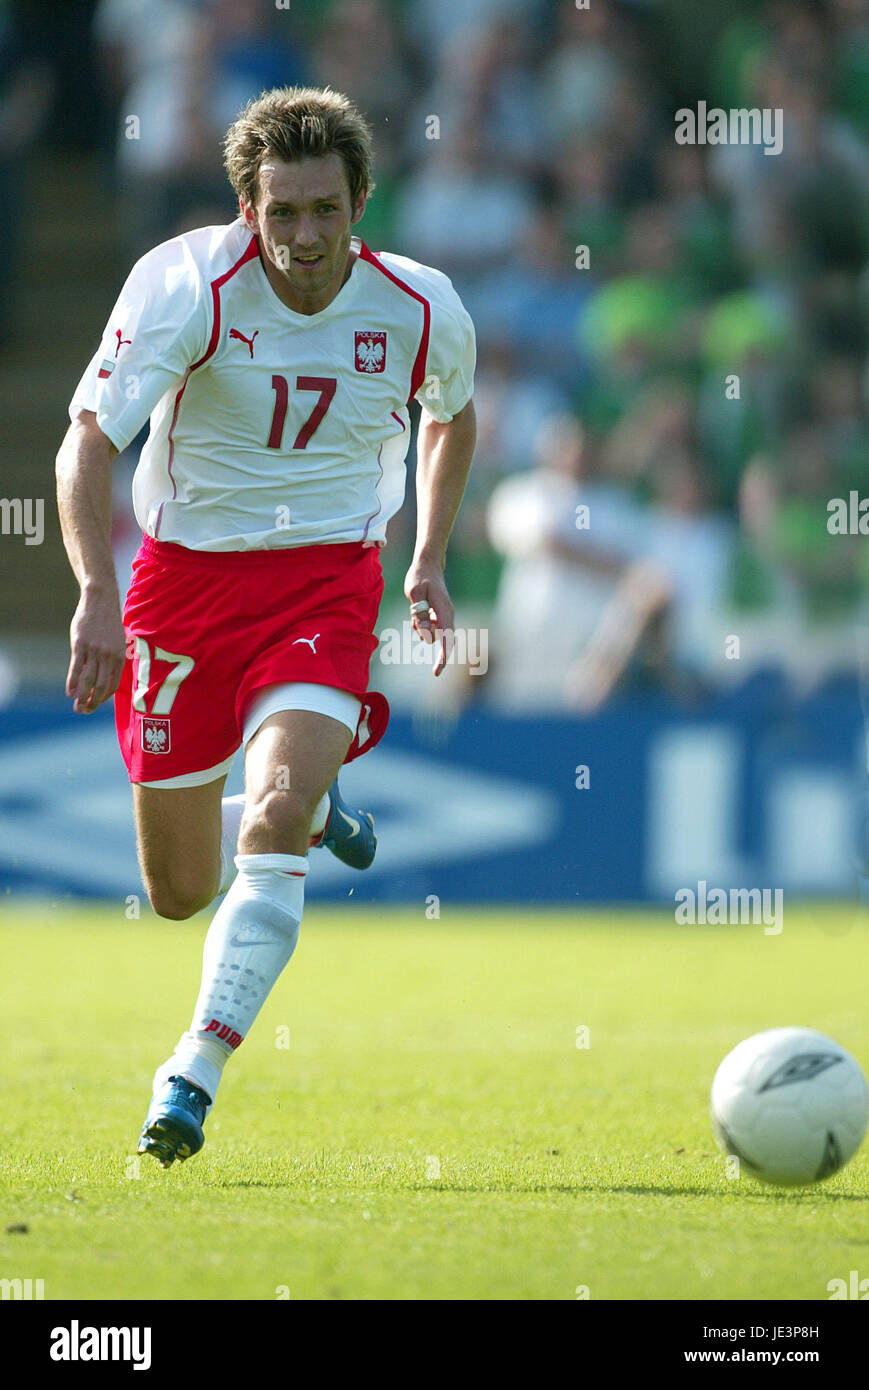 DAMIAN GORAWSKI POLAND WINDSOR PARK BELFAST NORTHERN IRELAND 05 September 2004 - Stock Image